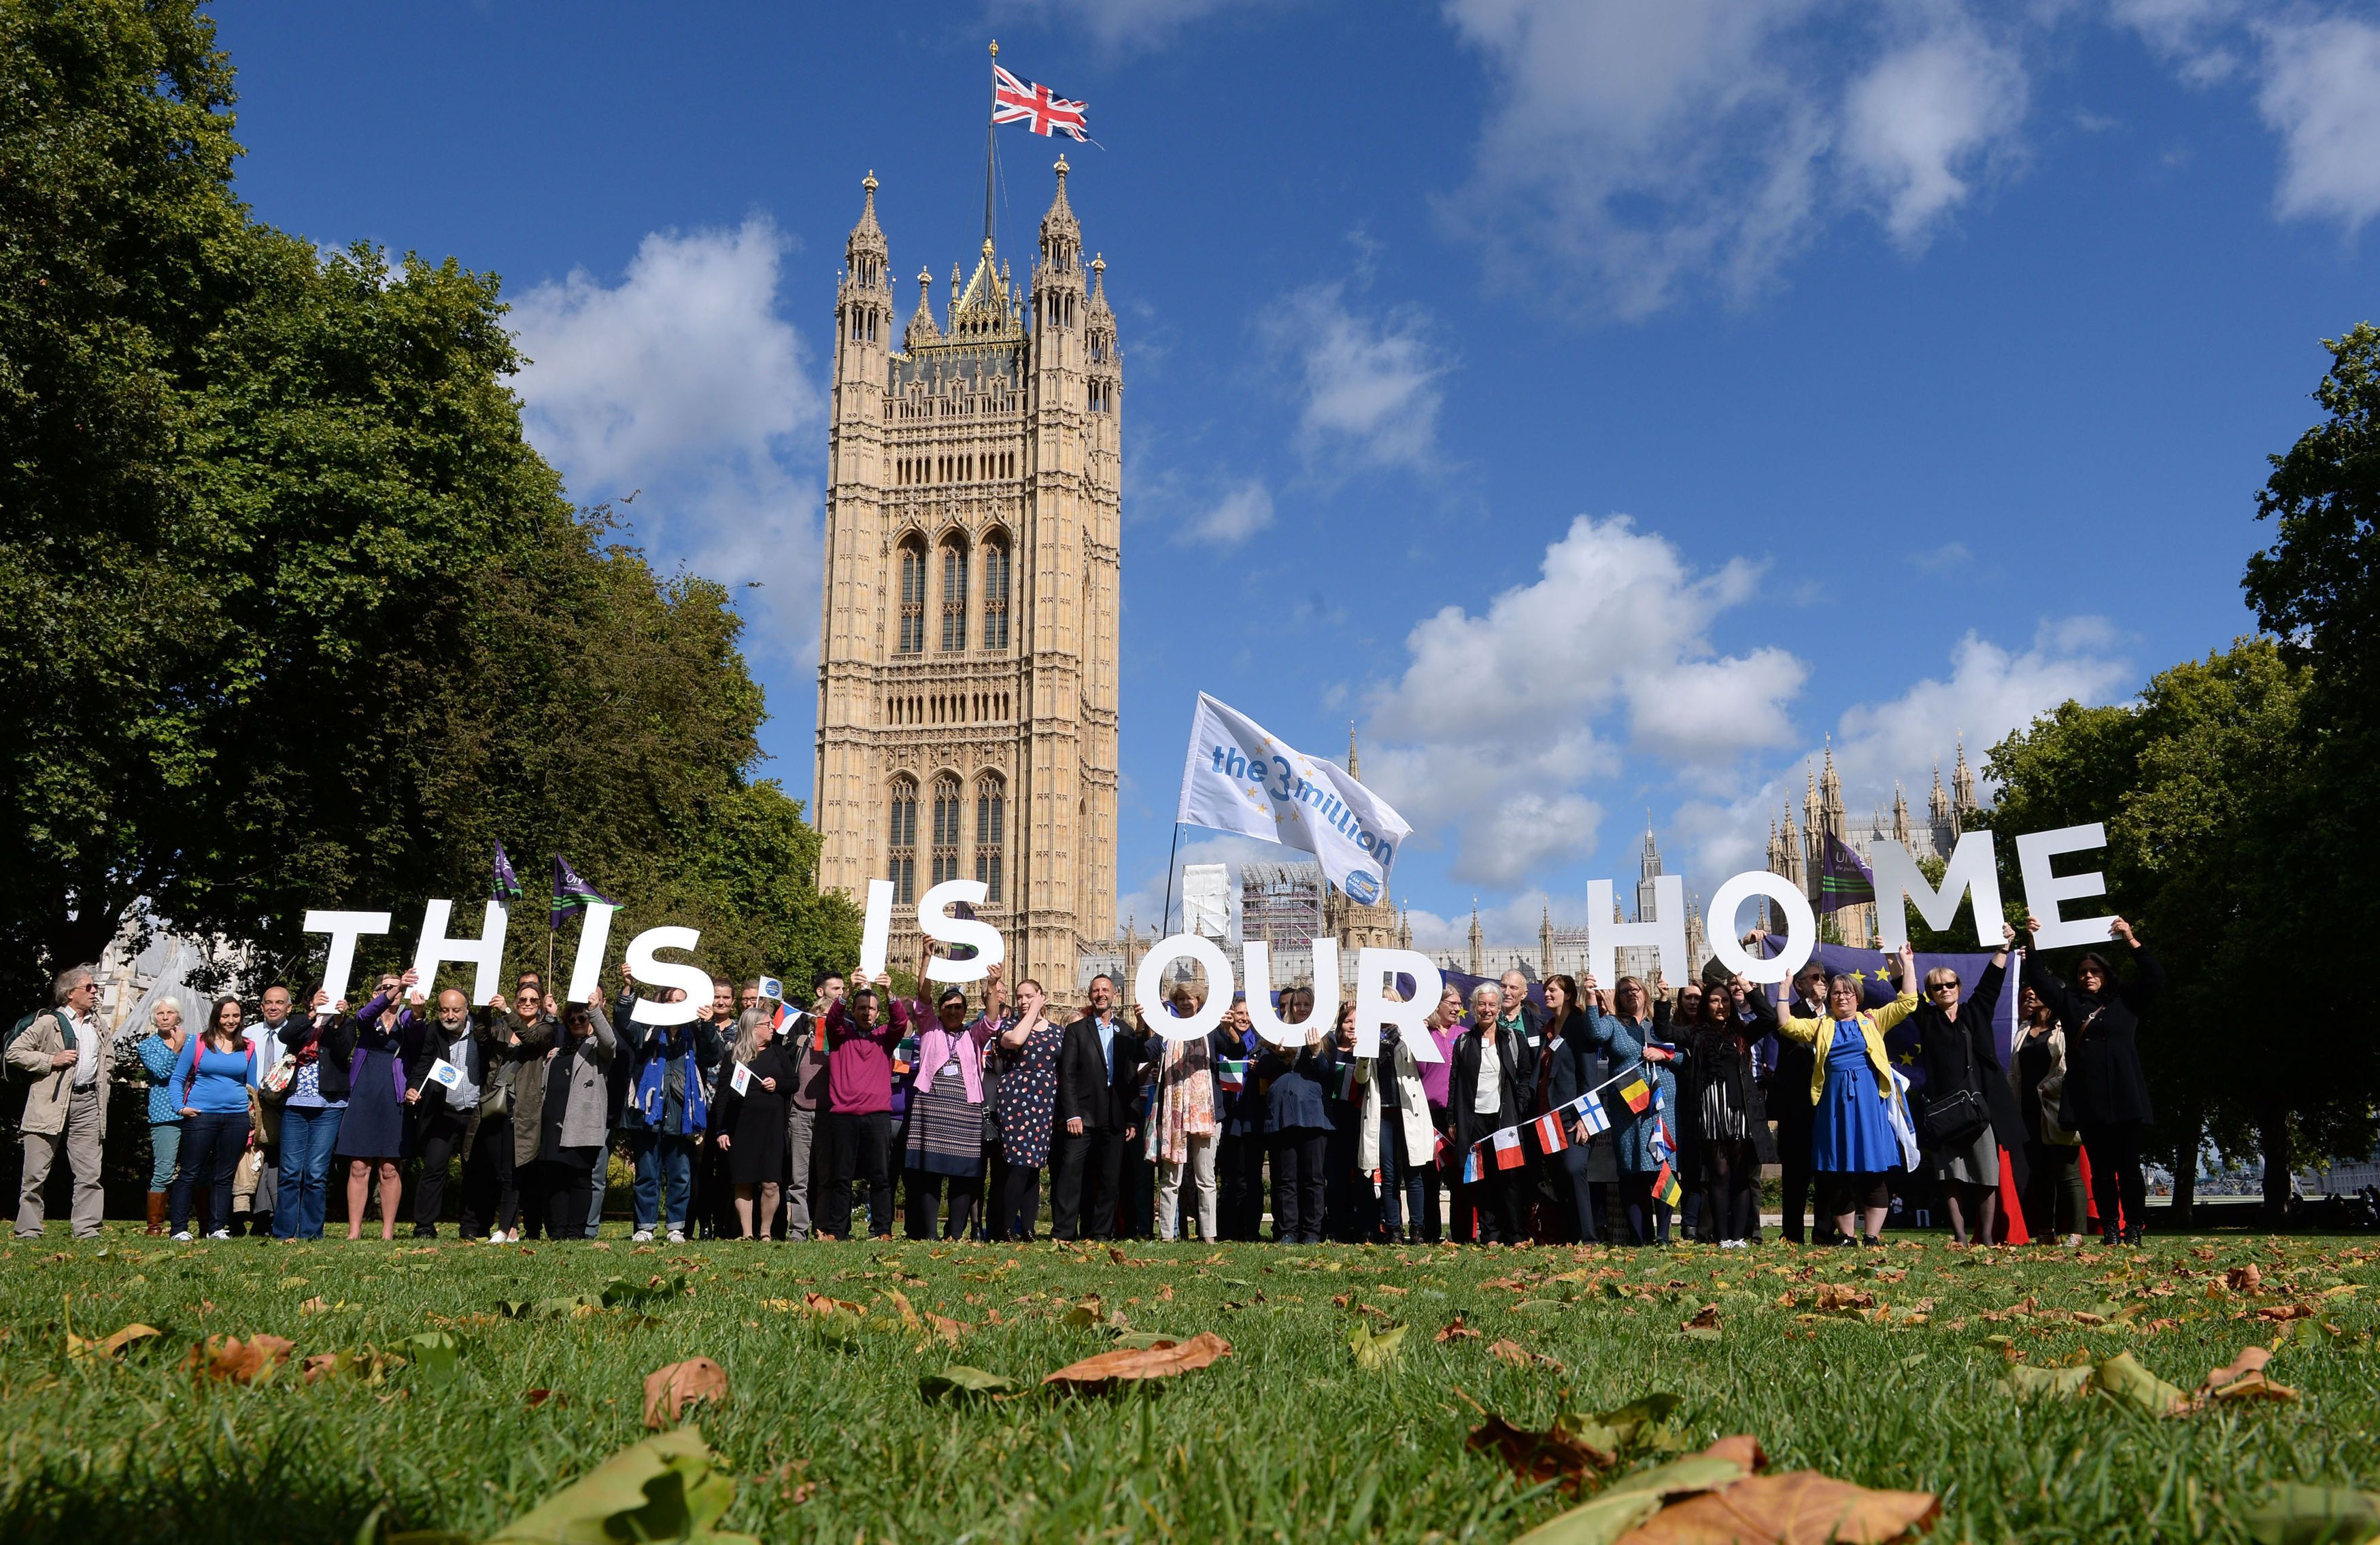 EU citizens in a protest outside the Houses of Parliament in